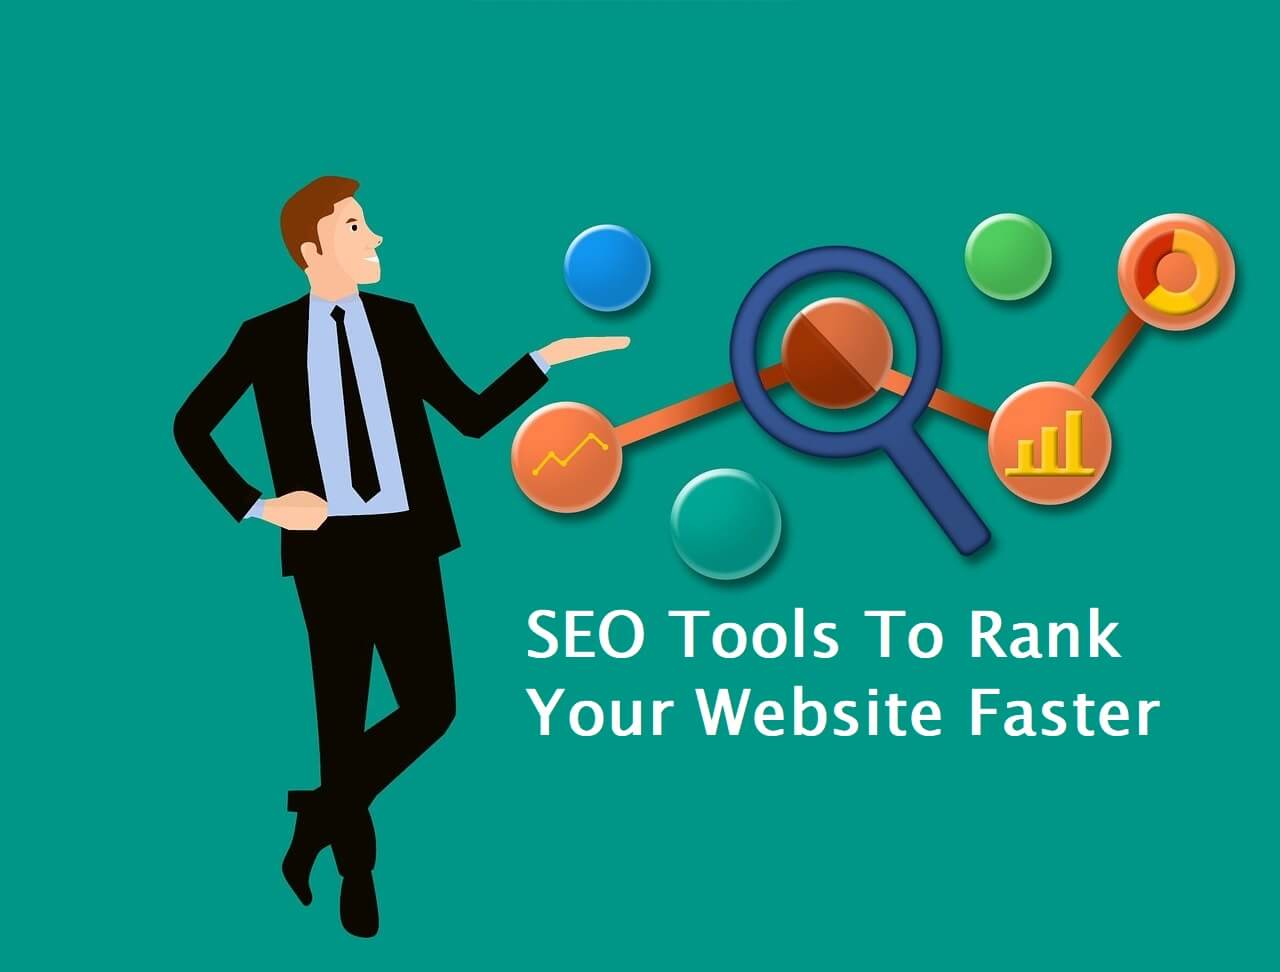 seo-tools-to-rank-your-website-faster-enformation